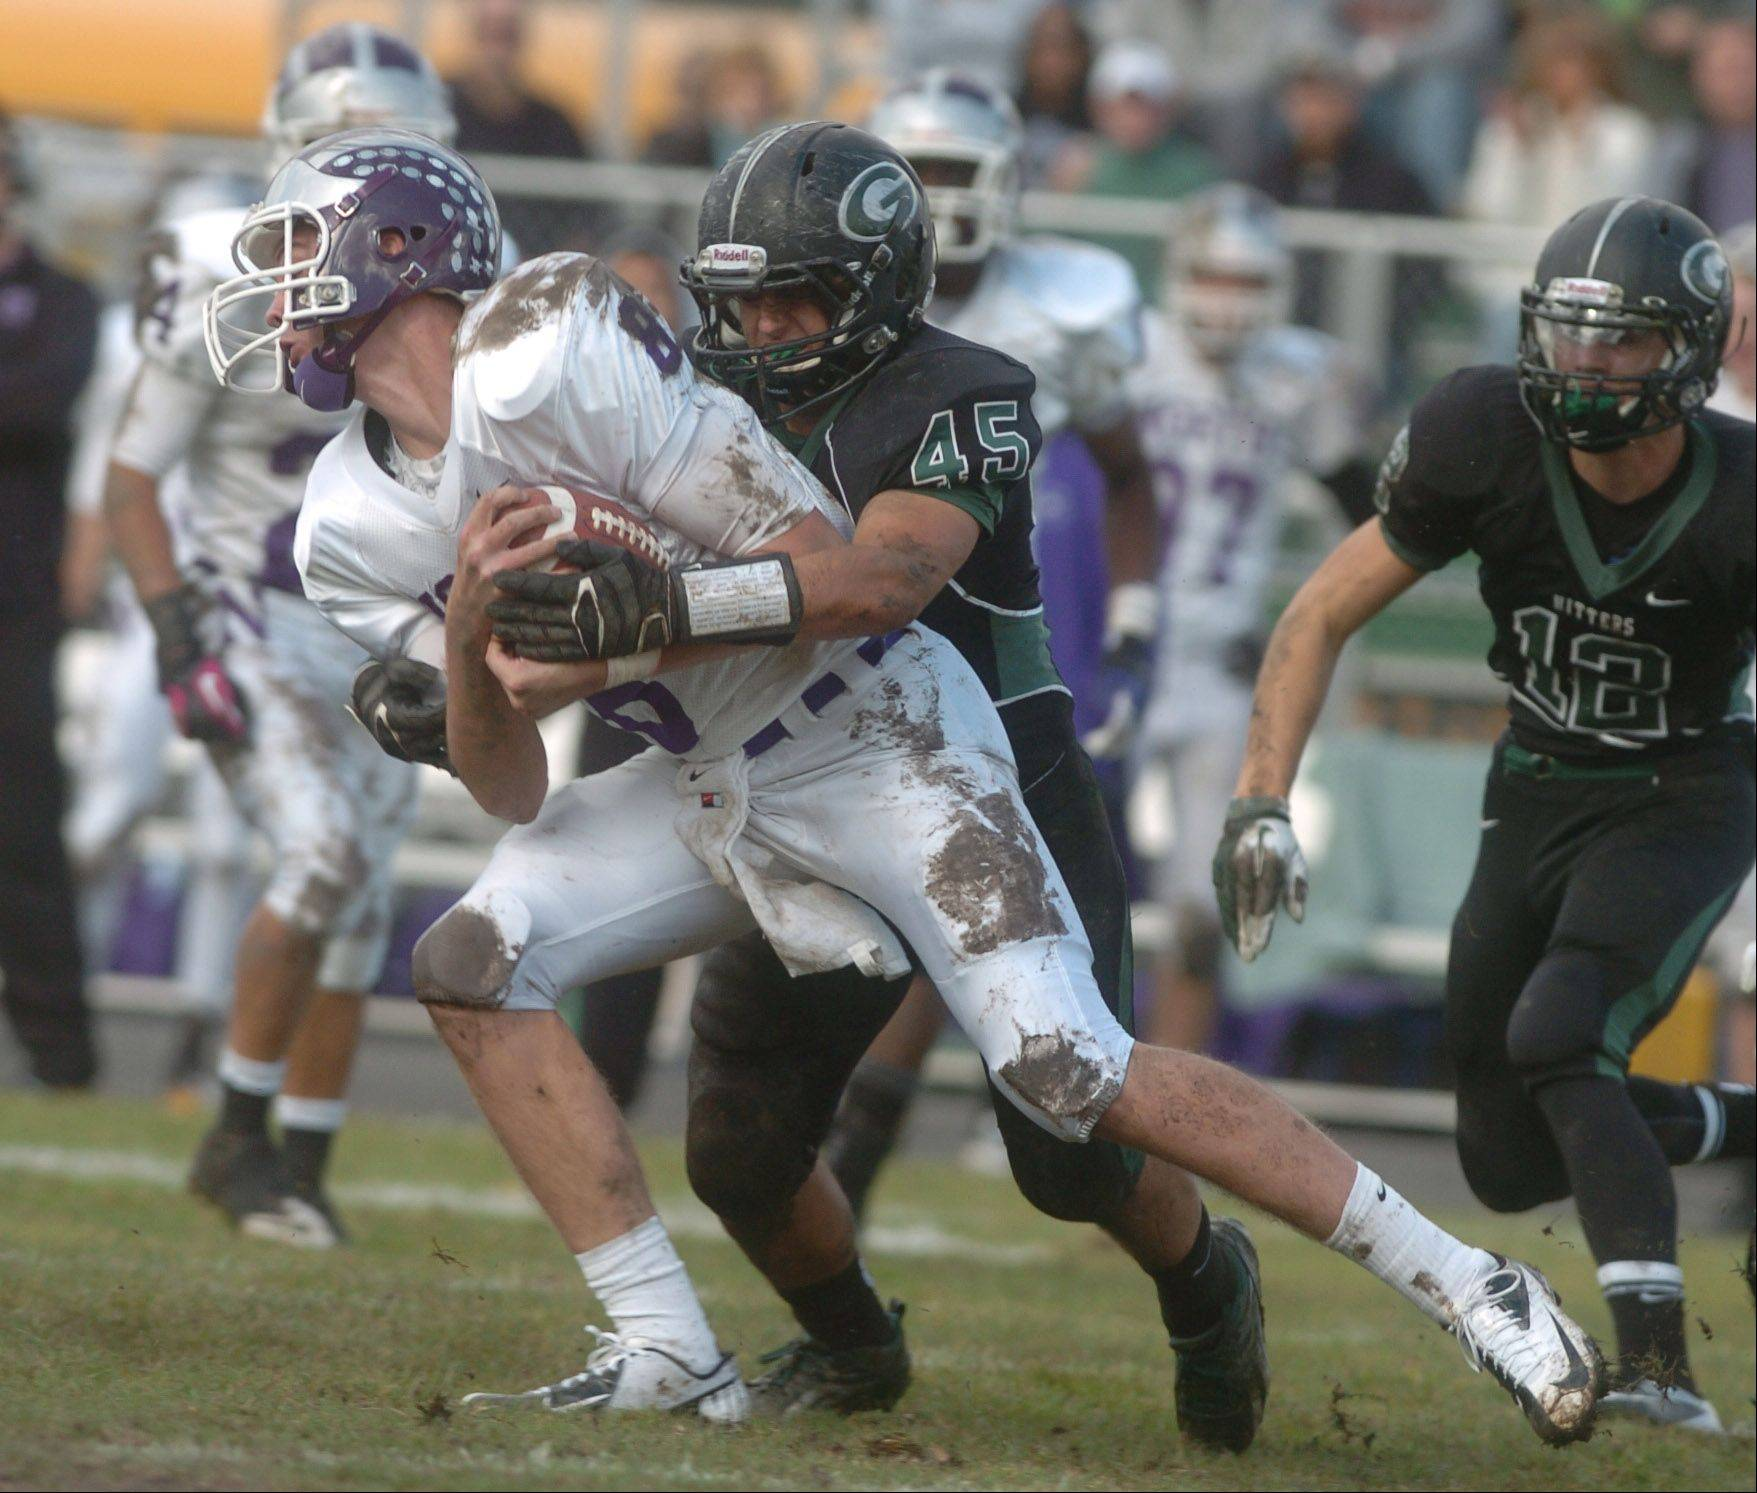 David Edwards of Downers Grove is pulled down by Jordan Hassan of Glenbard during the Downers Grove North at Glenbard West football game Saturday.